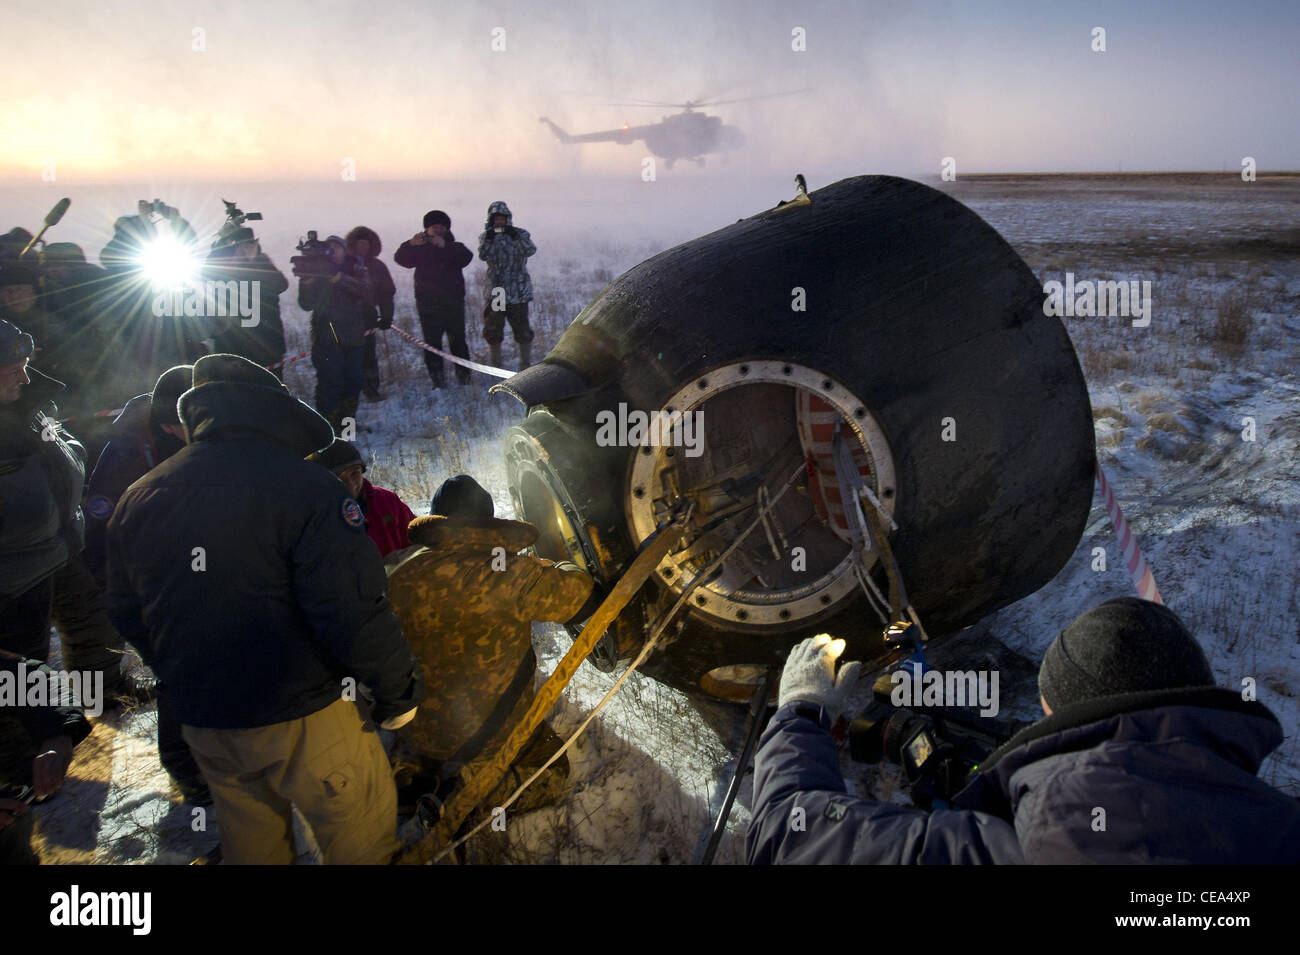 Expedition 29 Crew Lands Russian support personnel work to help get crew members out of the Soyuz TMA-02M spacecraft Stock Photo